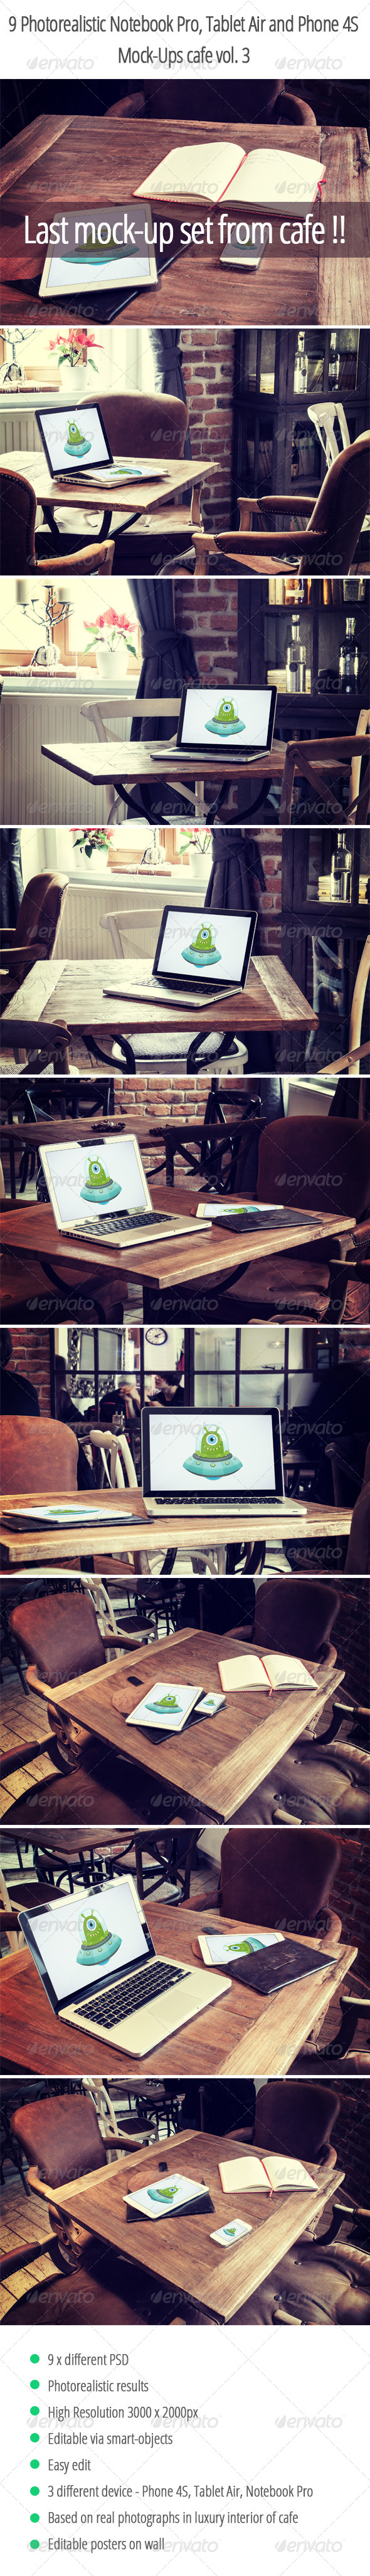 GraphicRiver 9 Photorealistic Device Mock-Ups in Cafe Vol.3 6912263